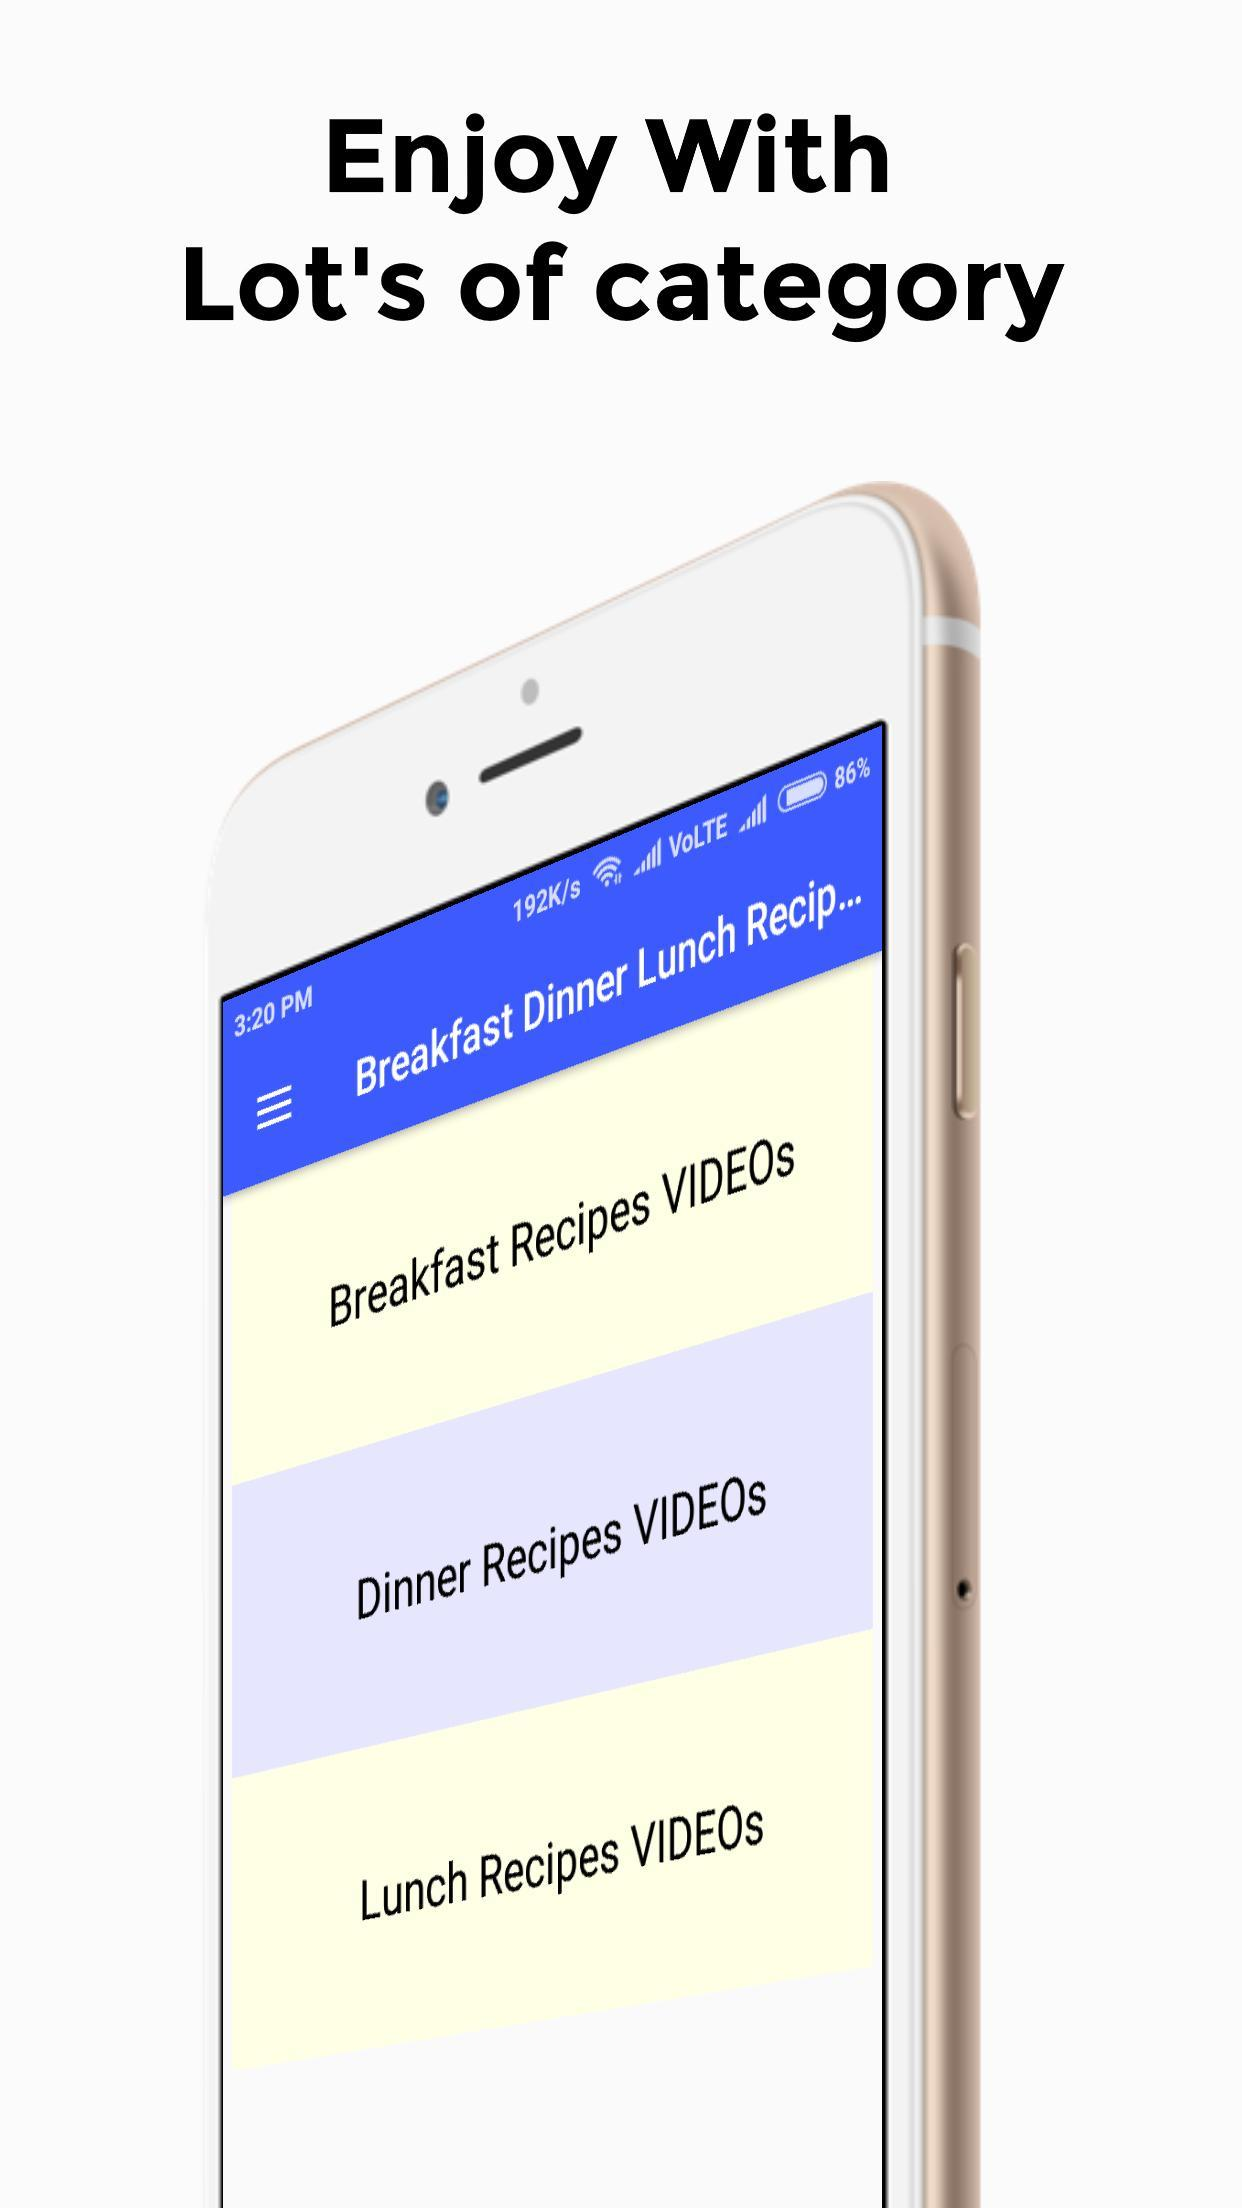 Breakfast Dinner Lunch Recipes Videos For Android Apk Download